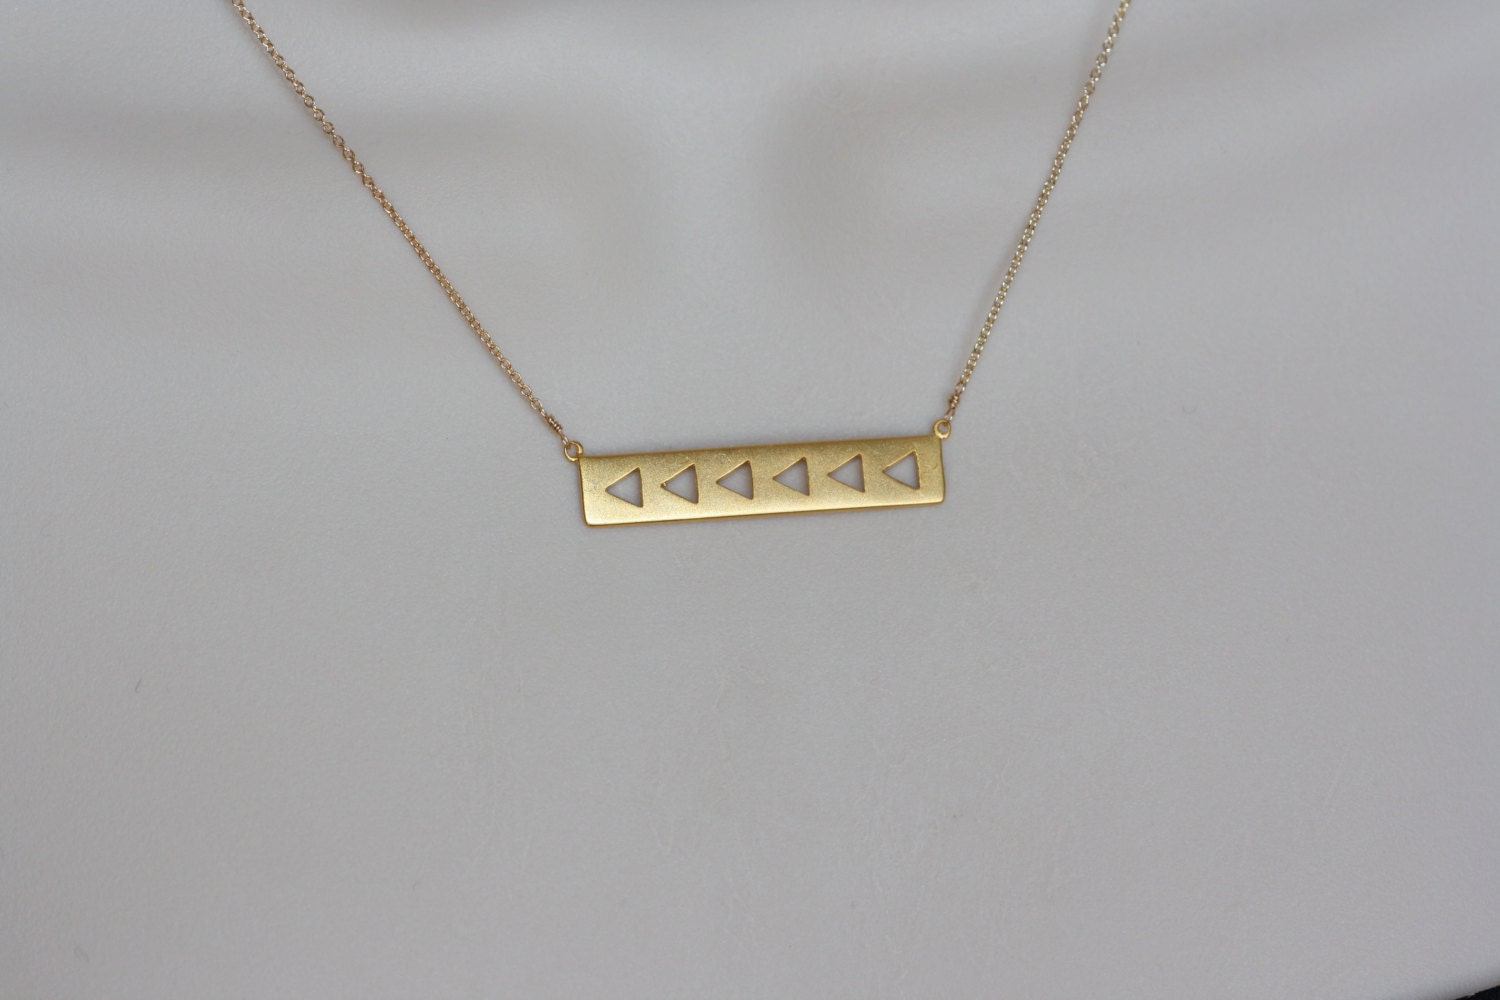 gold bar modern necklace gift for wife summer trend simple